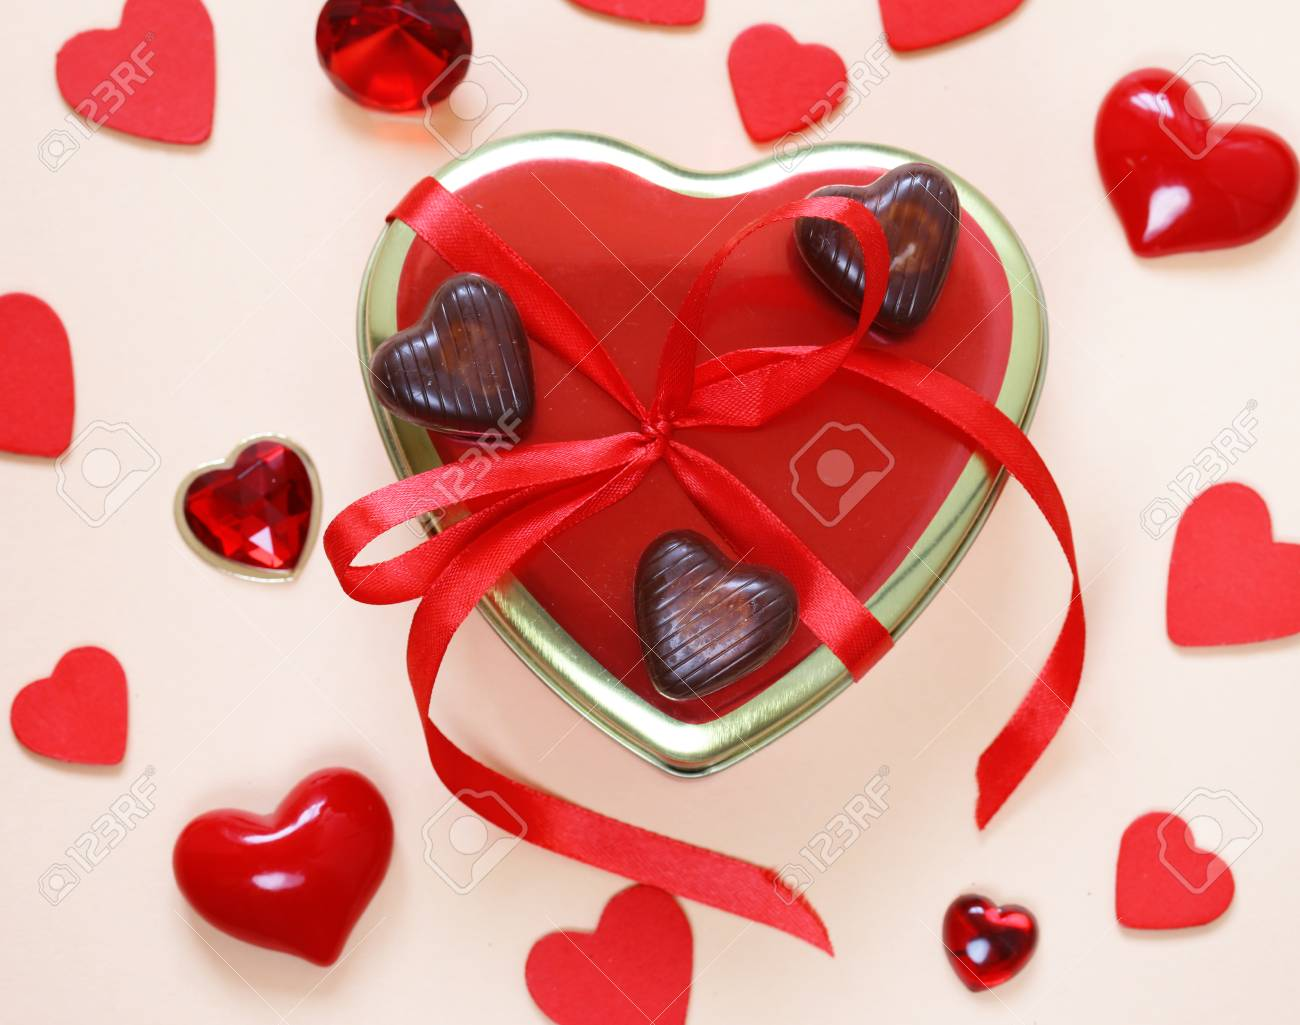 Romantic Symbols Of Hearts And Chocolate Candy Valentine S Day Stock